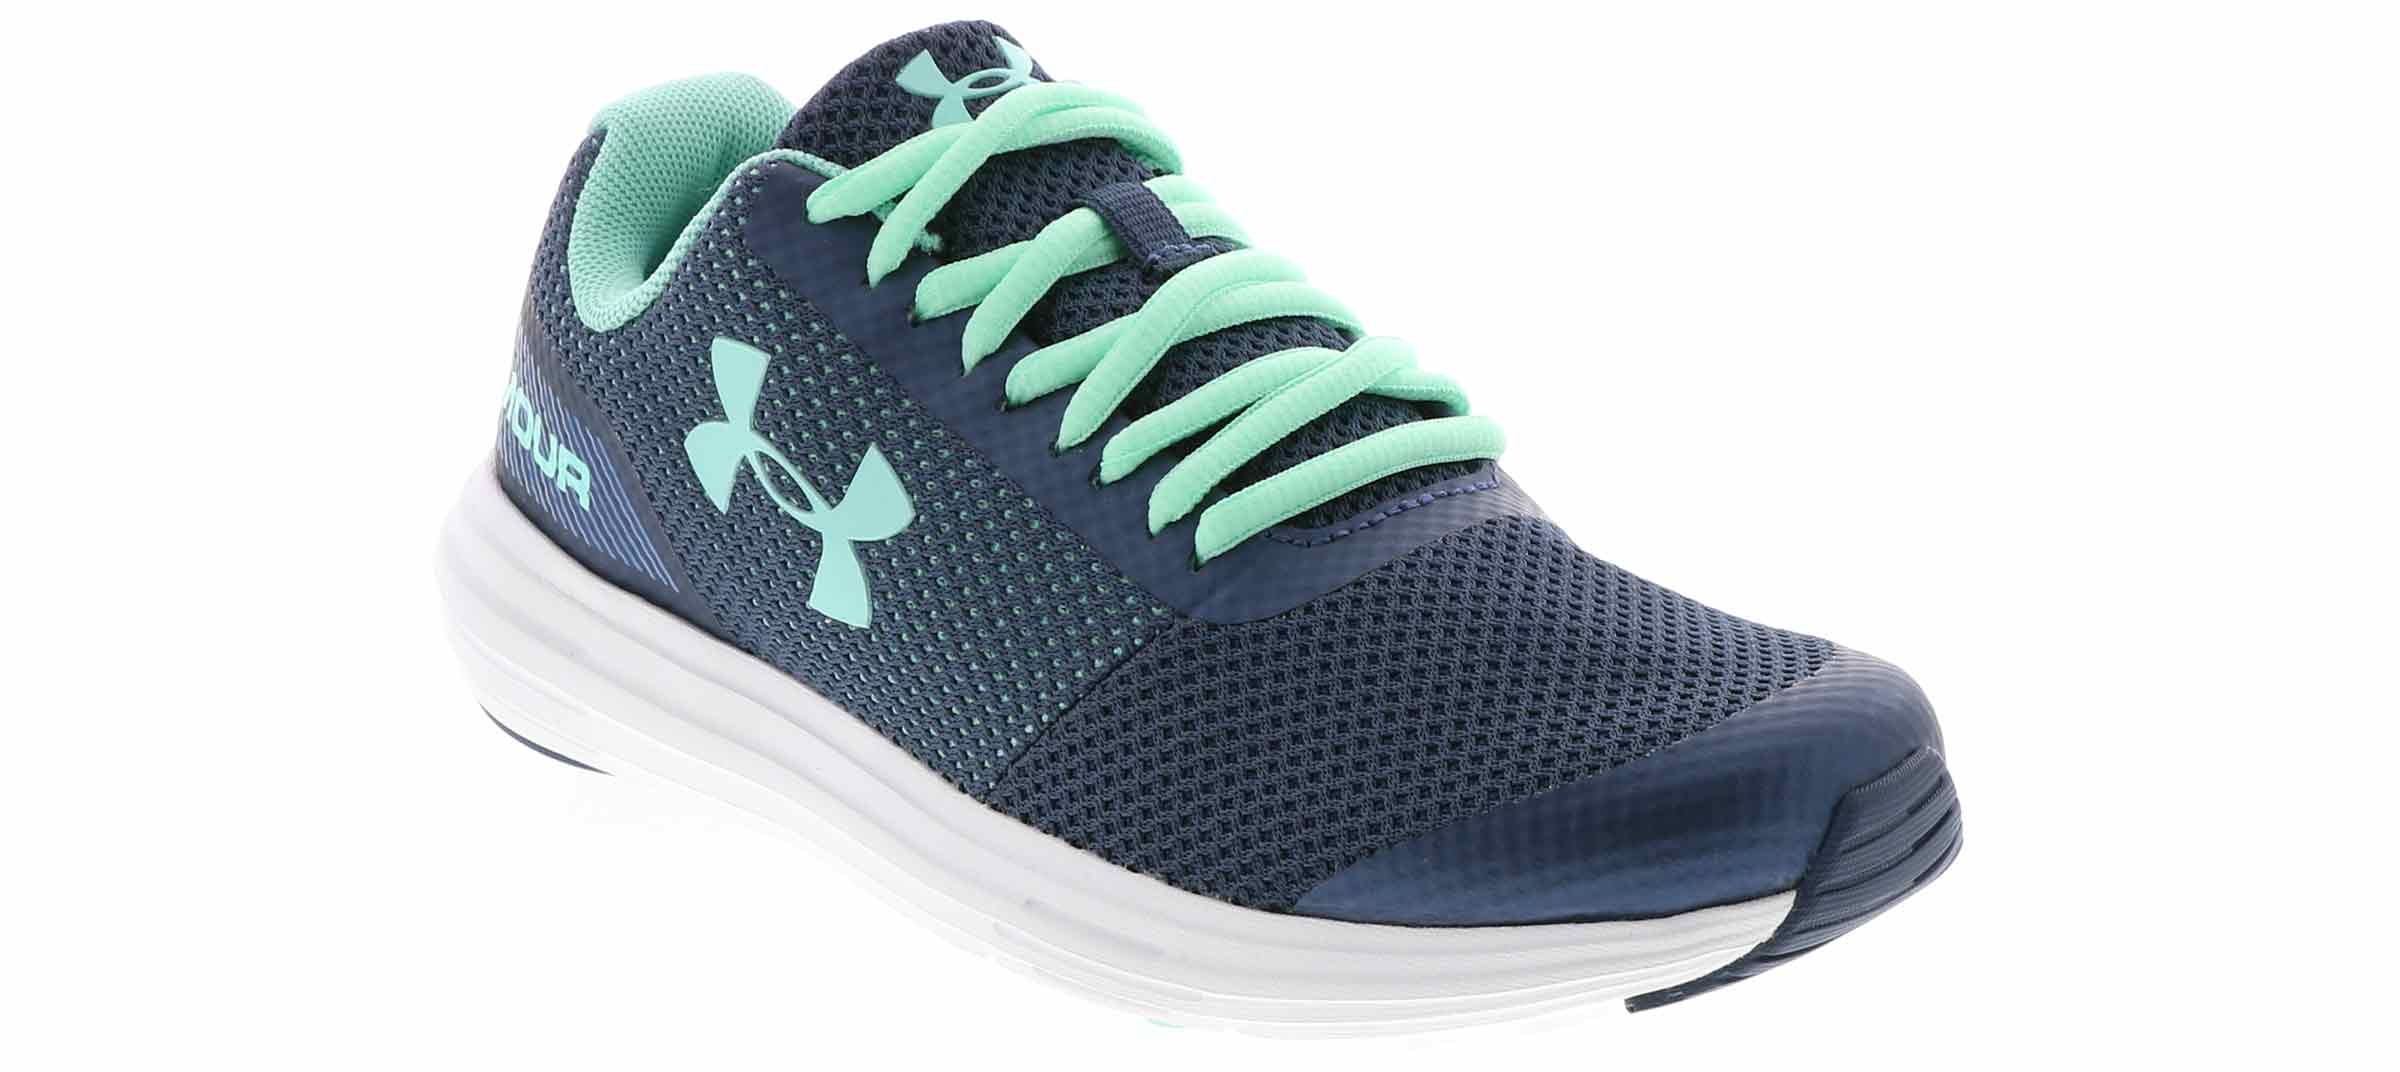 Under Armour GPS Unlimited Pink+Blue Kids Sneakers Shoes 3020474-600 Girls NEW